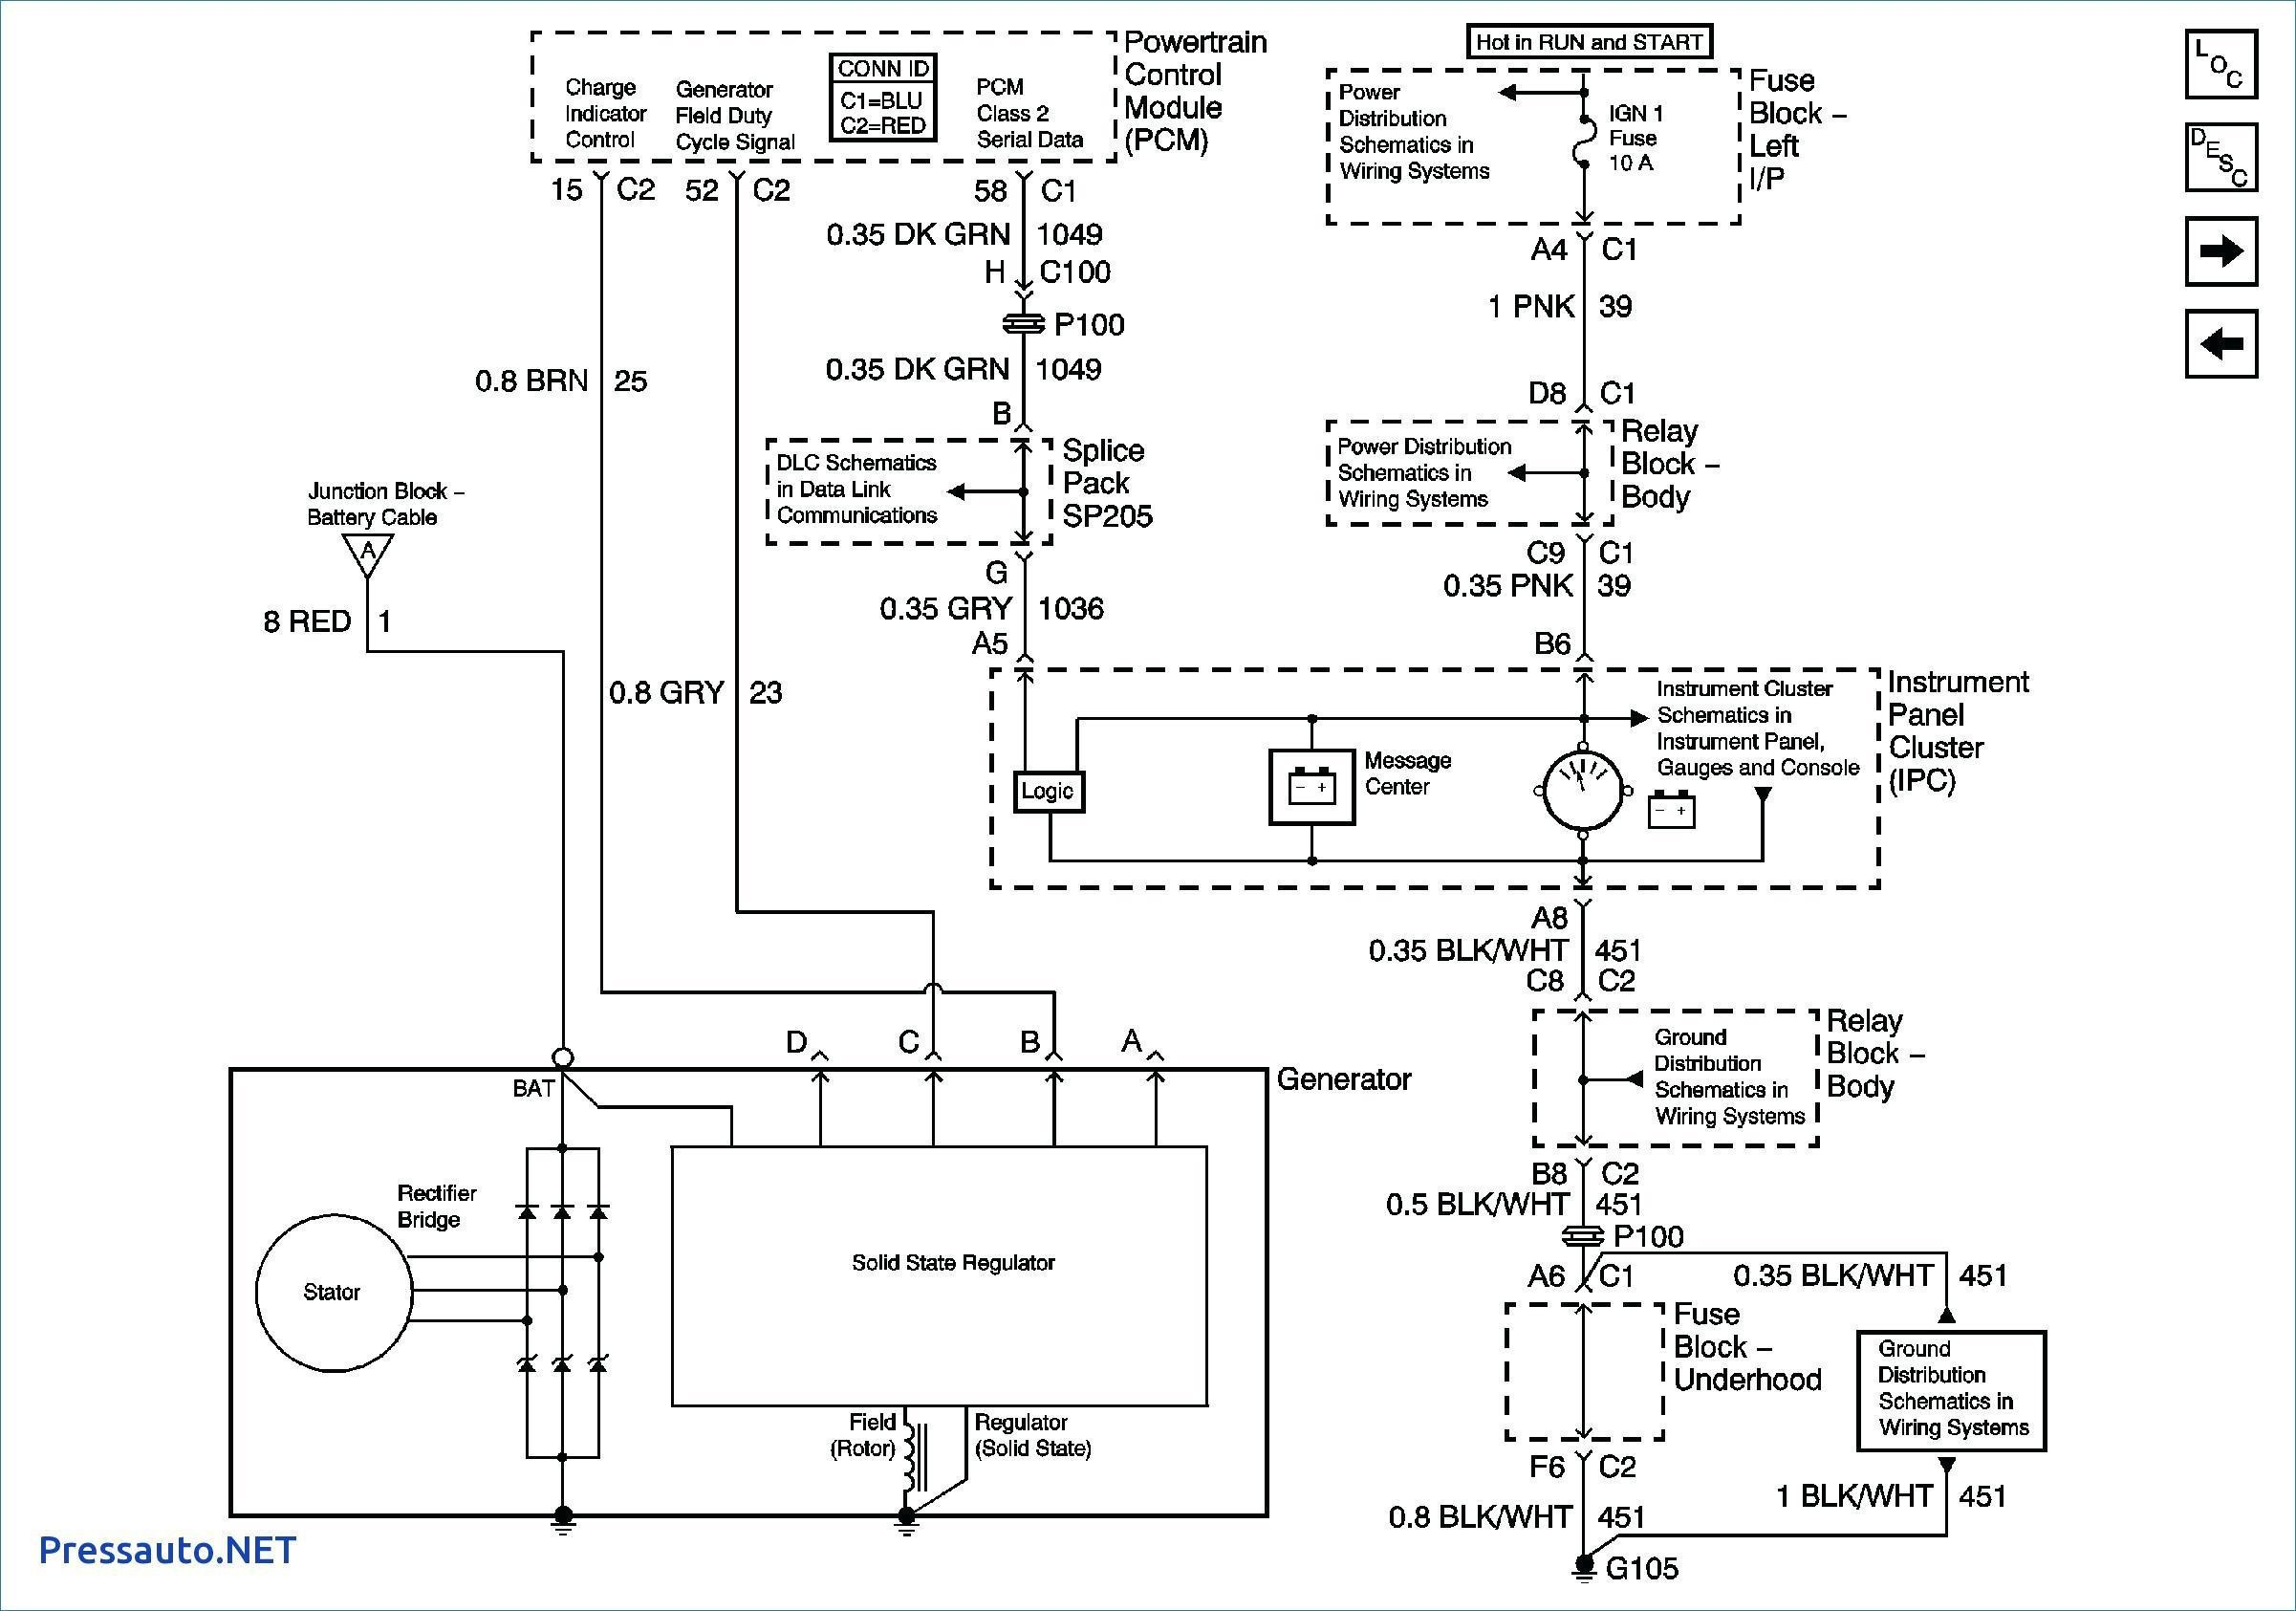 Ibanez Wiring Diagram Inspirational | Wiring Diagram Image on ibanez roadcore, ibanez rg450dx, ibanez hsh wiring, ibanez pickup wiring, ibanez grg120bdx, ibanez rg421, ibanez model identification, ibanez gsr200, ibanez 9-string, ibanez explorer, ibanez 8 string, ibanez jbm100, ibanez gax, ibanez color codes, ibanez axstar, ibanez s470 mahogany oil, ibanez 7 string, ibanez v7 and v8 wiring, ibanez sz320, ibanez s5570q,